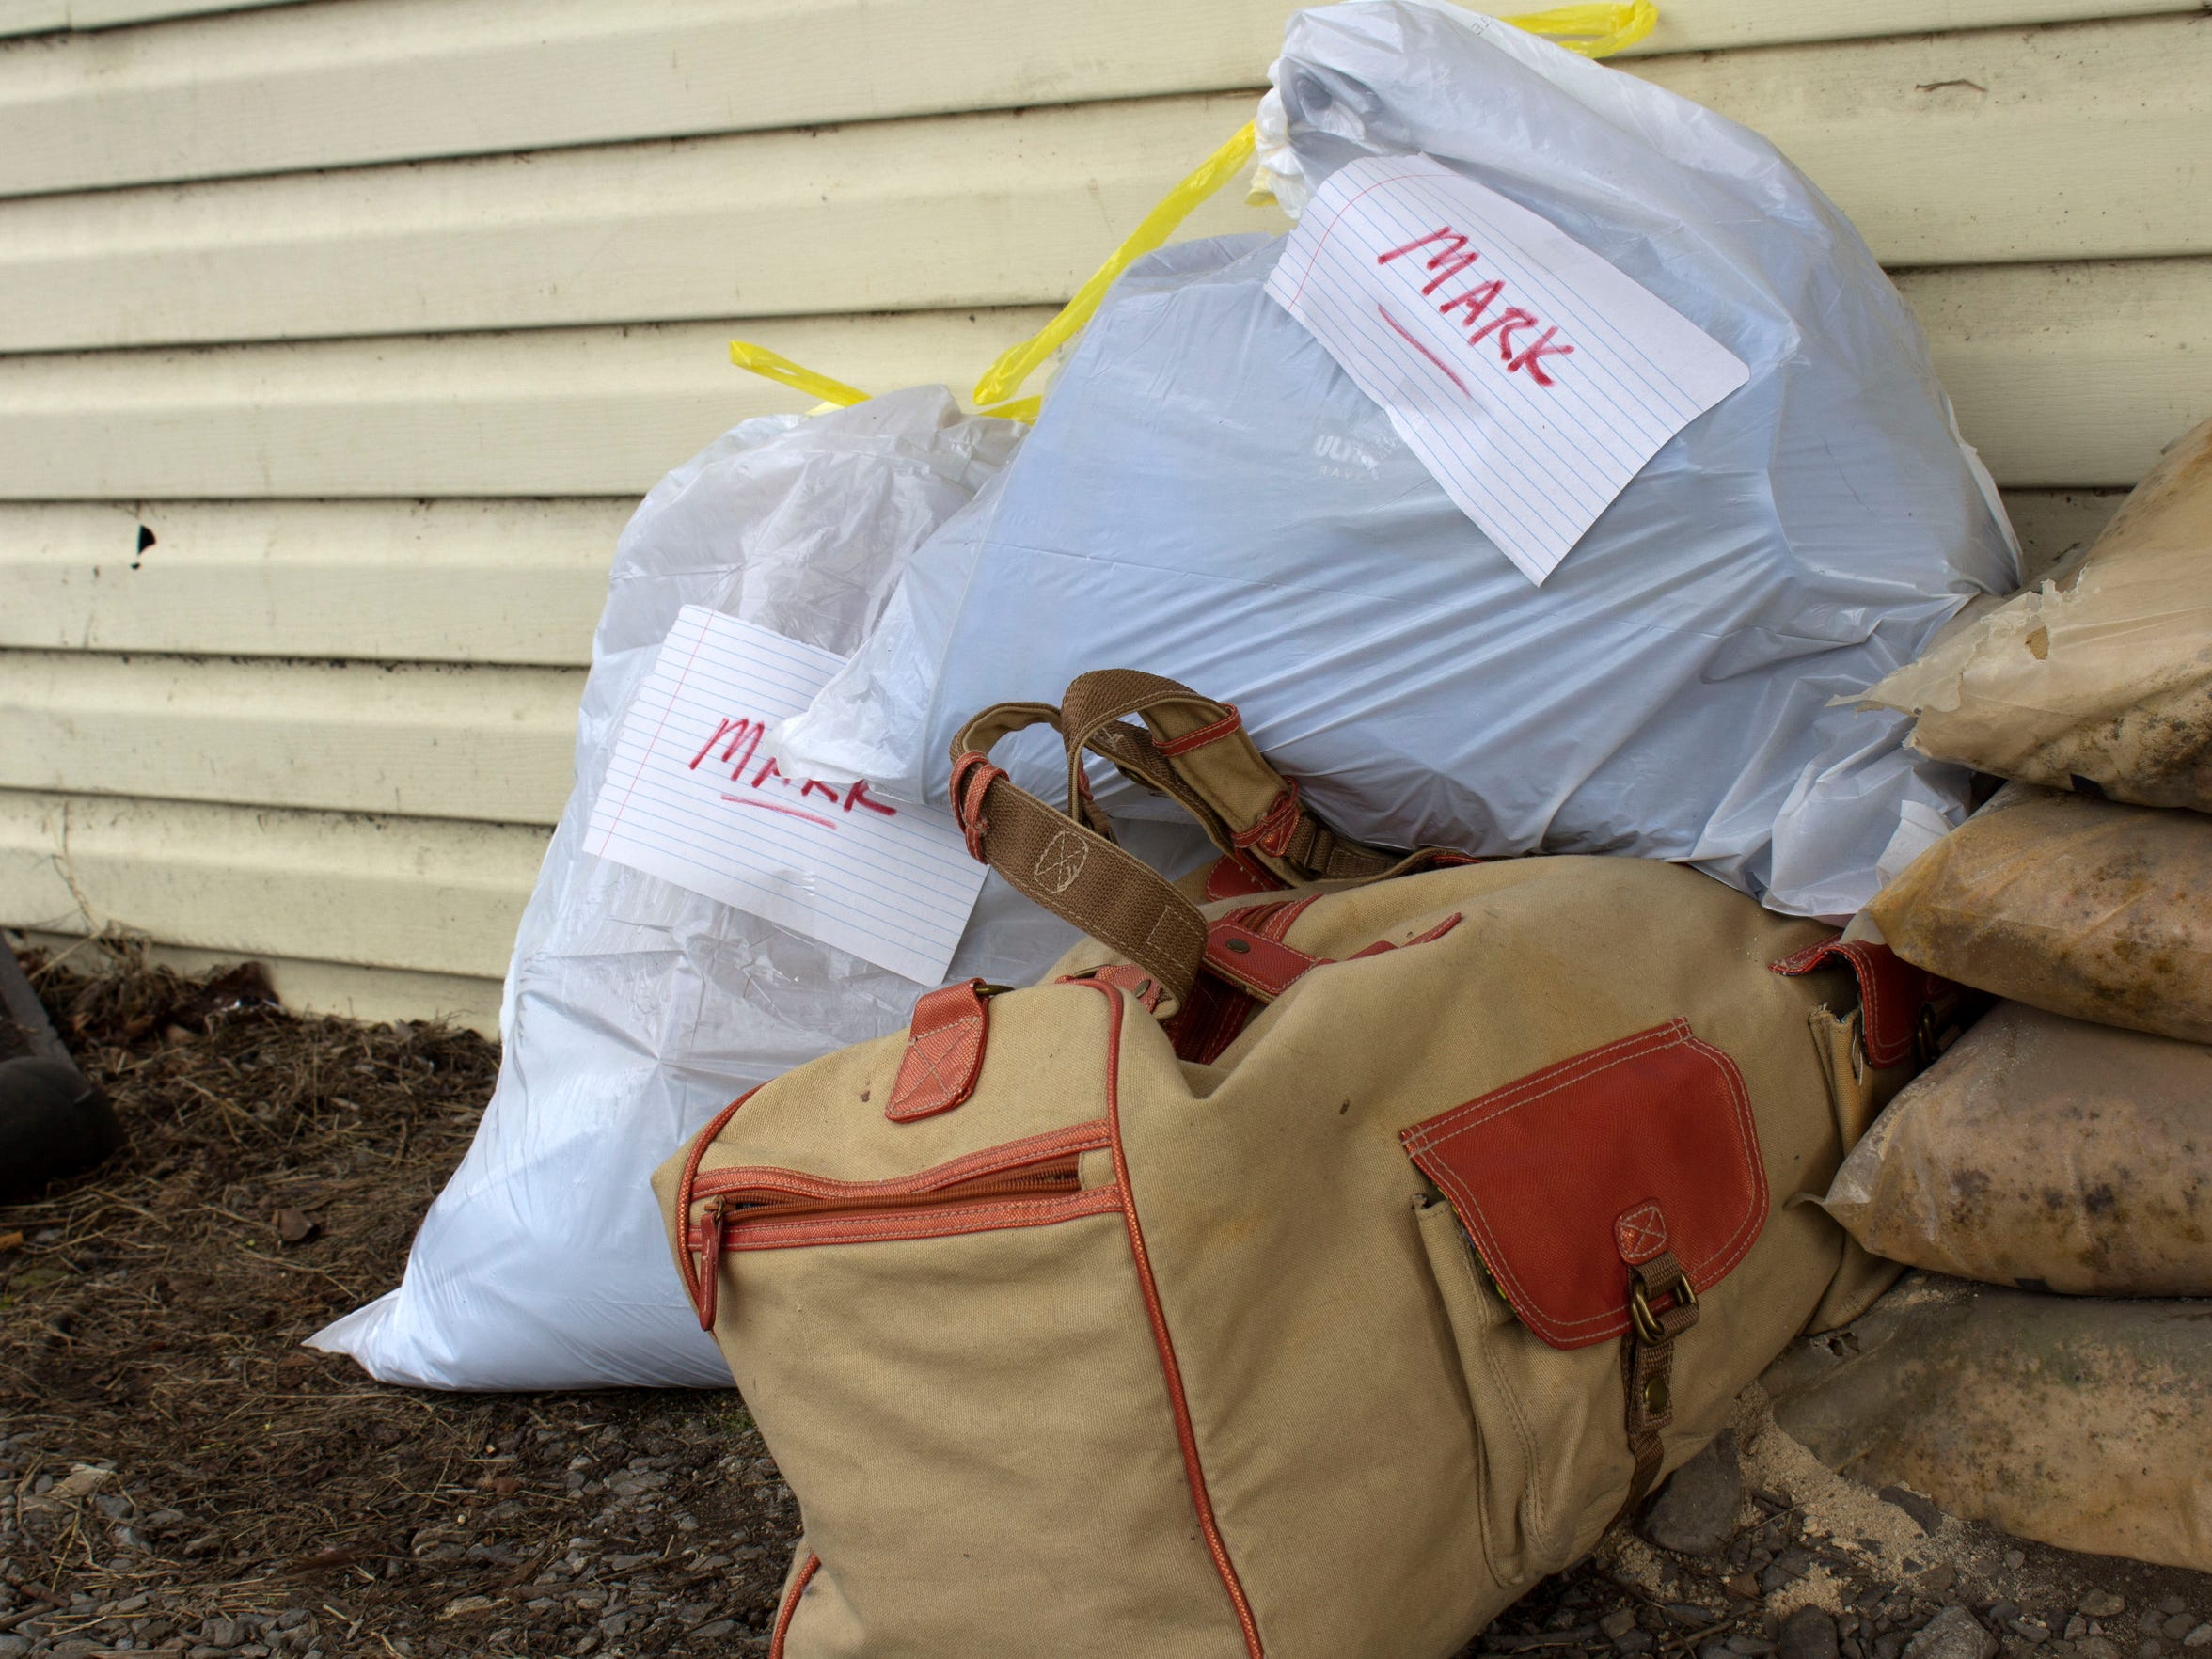 Several bags containing items belonging to a resident